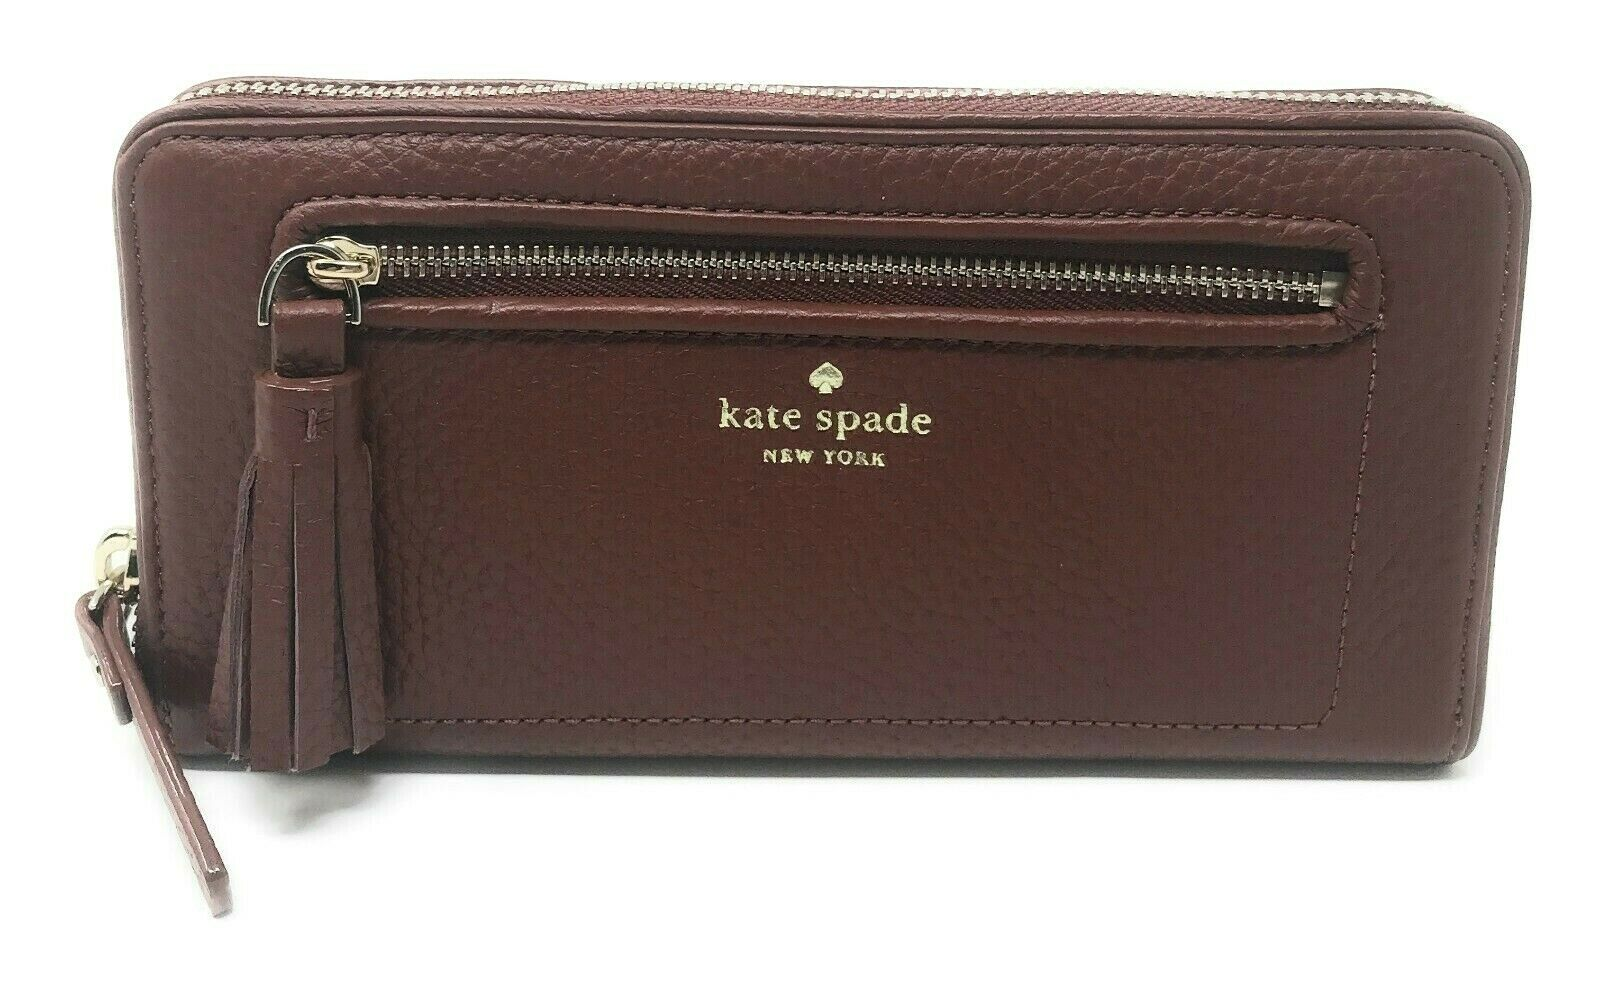 Kate Spade Chester Street Neda Port Brown Zip Around Wallet WLRU2654 Clothing, Shoes & Accessories